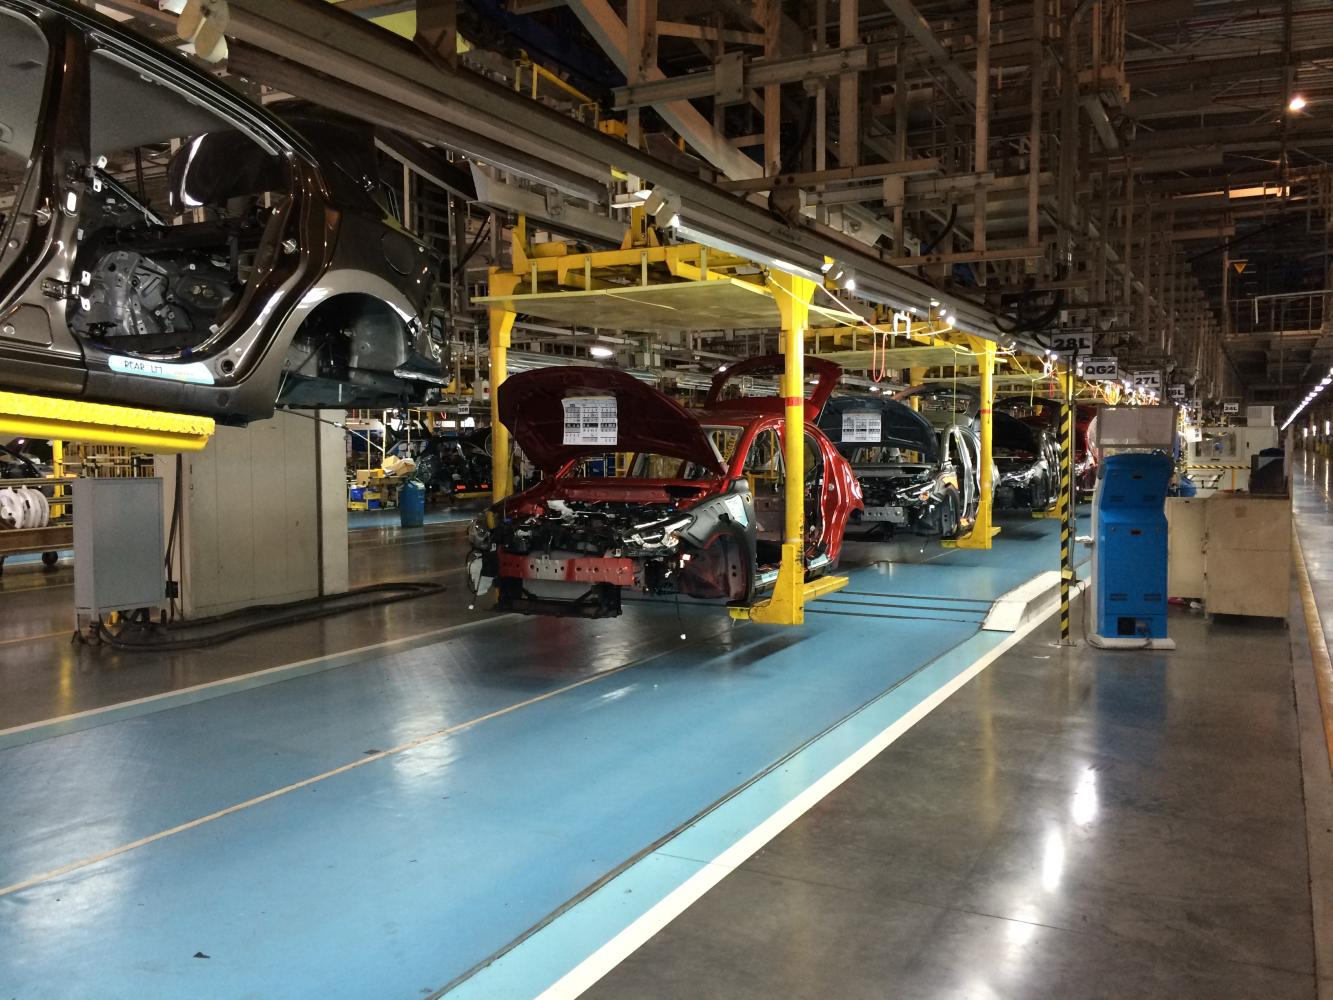 The assembly line at a Mazda car production facility in Rayong. The facility is operated by AutoAlliance Thailand, a joint venture with Ford. (Photo by Piyachart Maikaew)